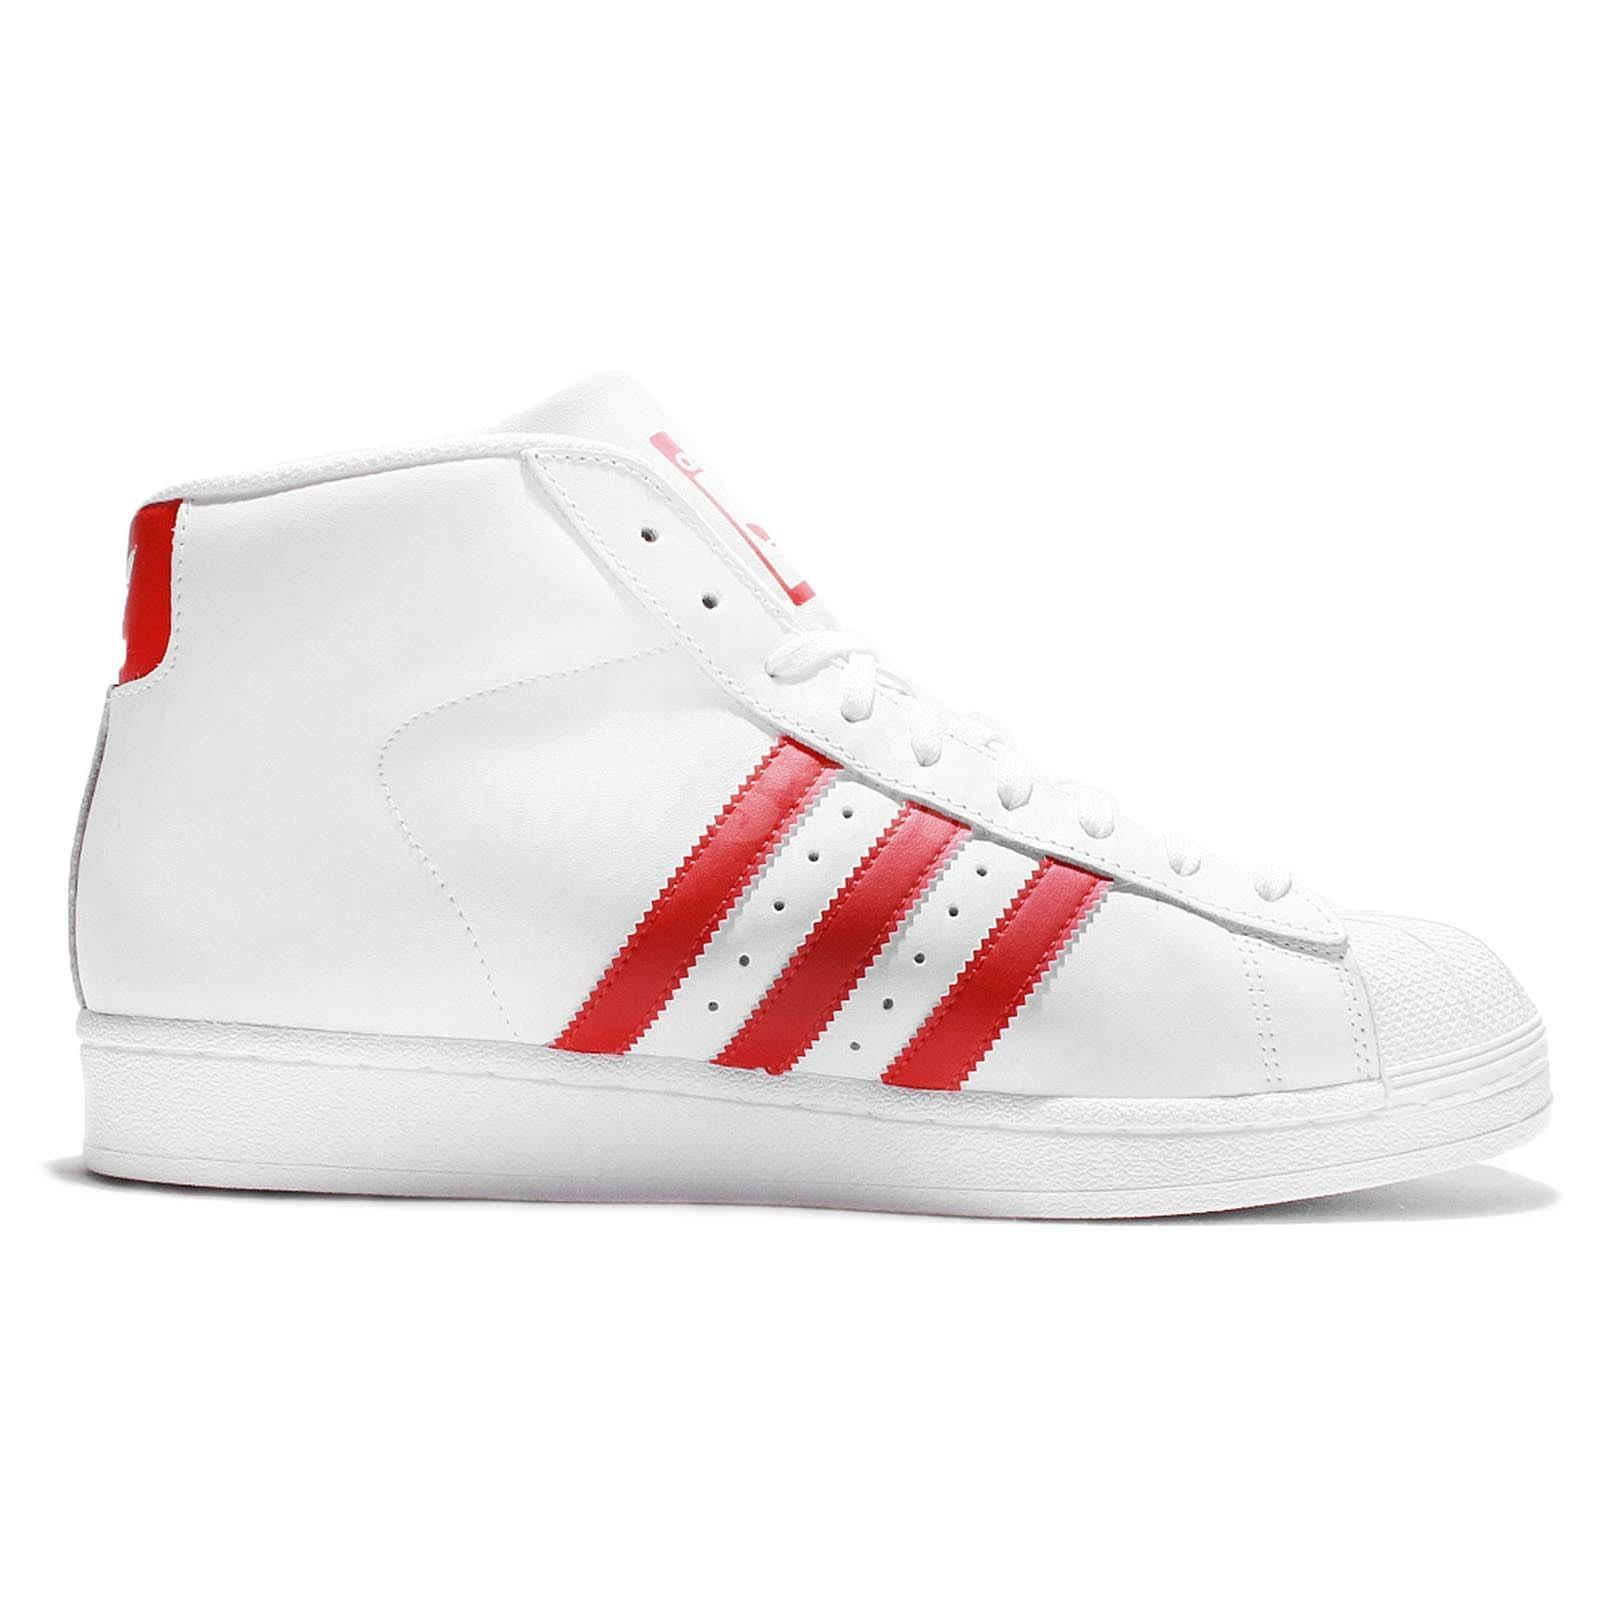 24038959ccd4b shop adidas originals zx 630 blue red zest 7419c 183e2  buy adidas  originals pro model white red silver mens size shoes sneakers s75928 92afb  76182